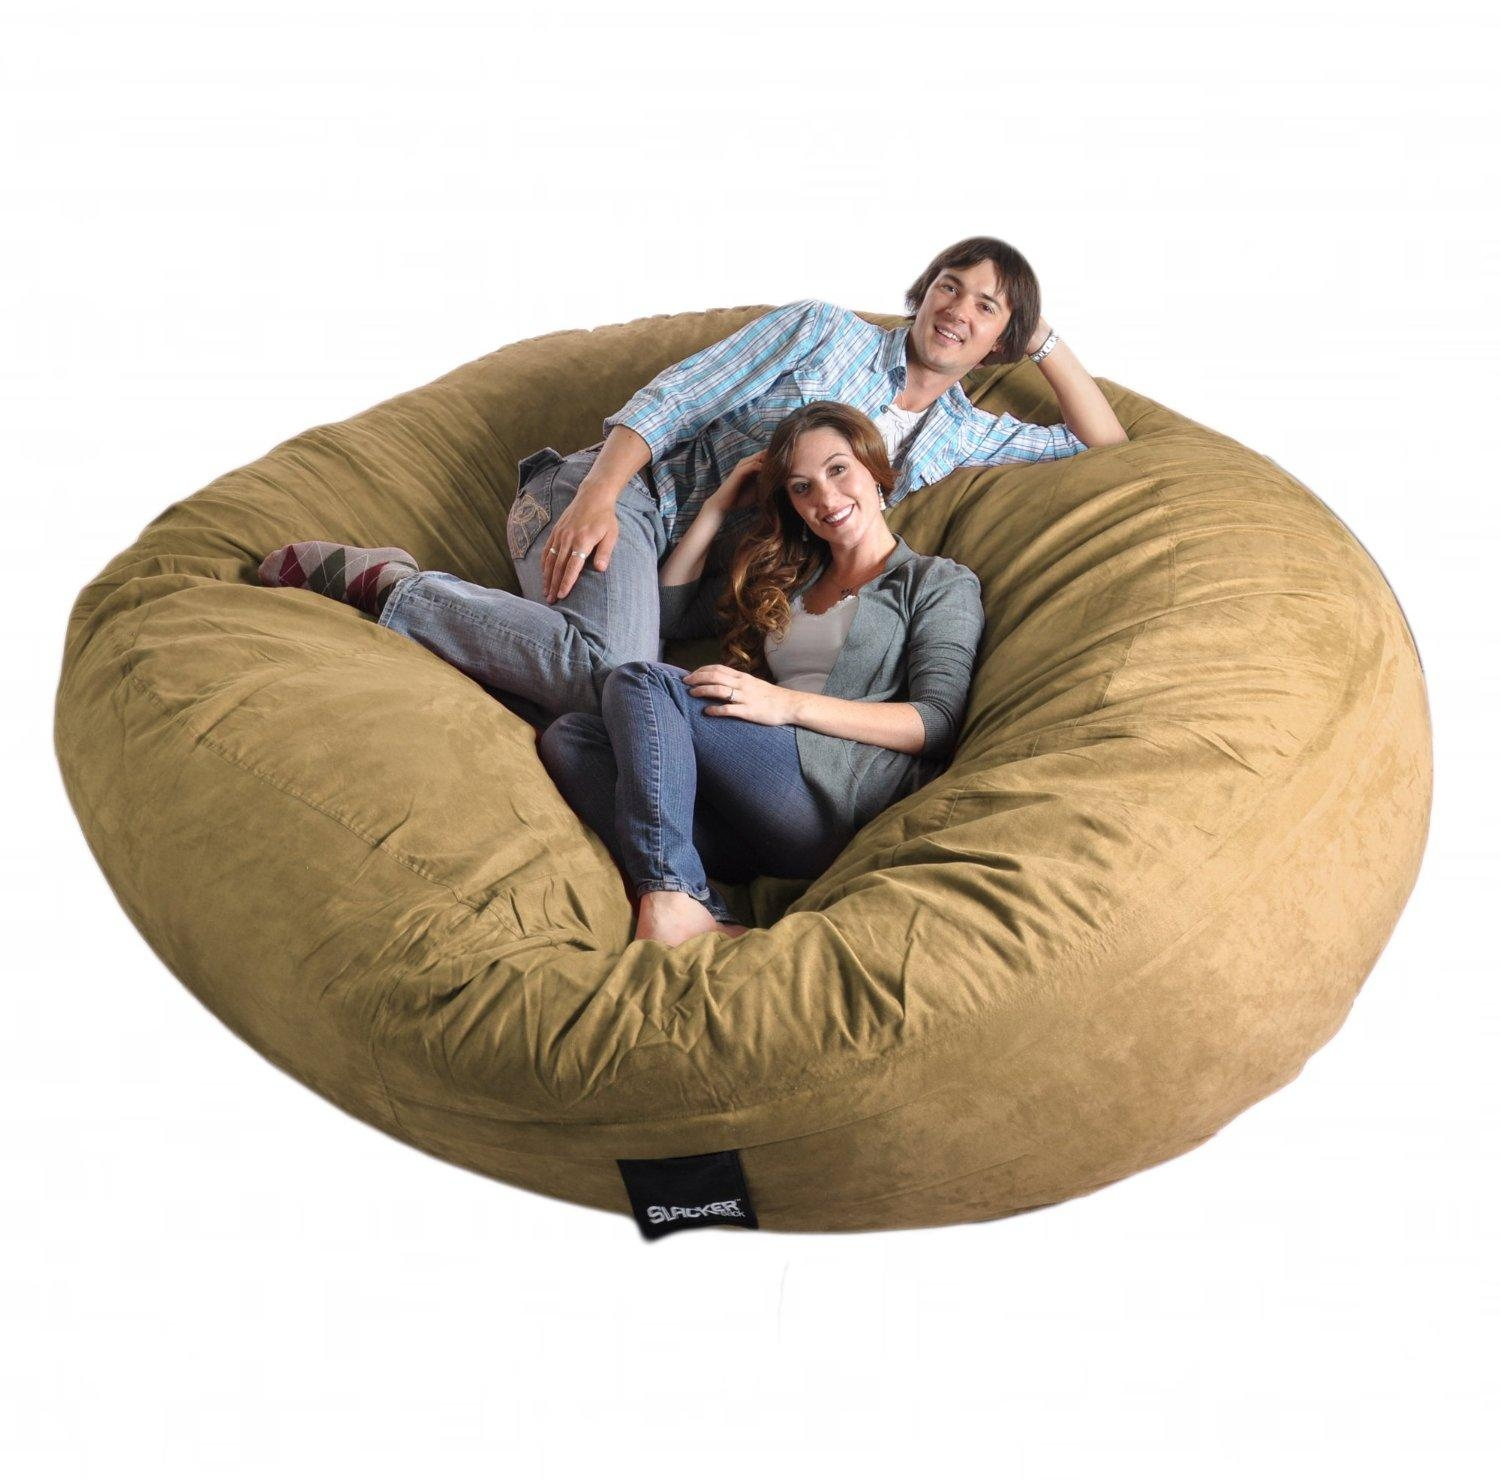 Com: 8 Feet Round Light Brown Tan Xxxl Foam Bean Bag Chair Throughout Giant Bean Bag Chairs (Image 6 of 20)